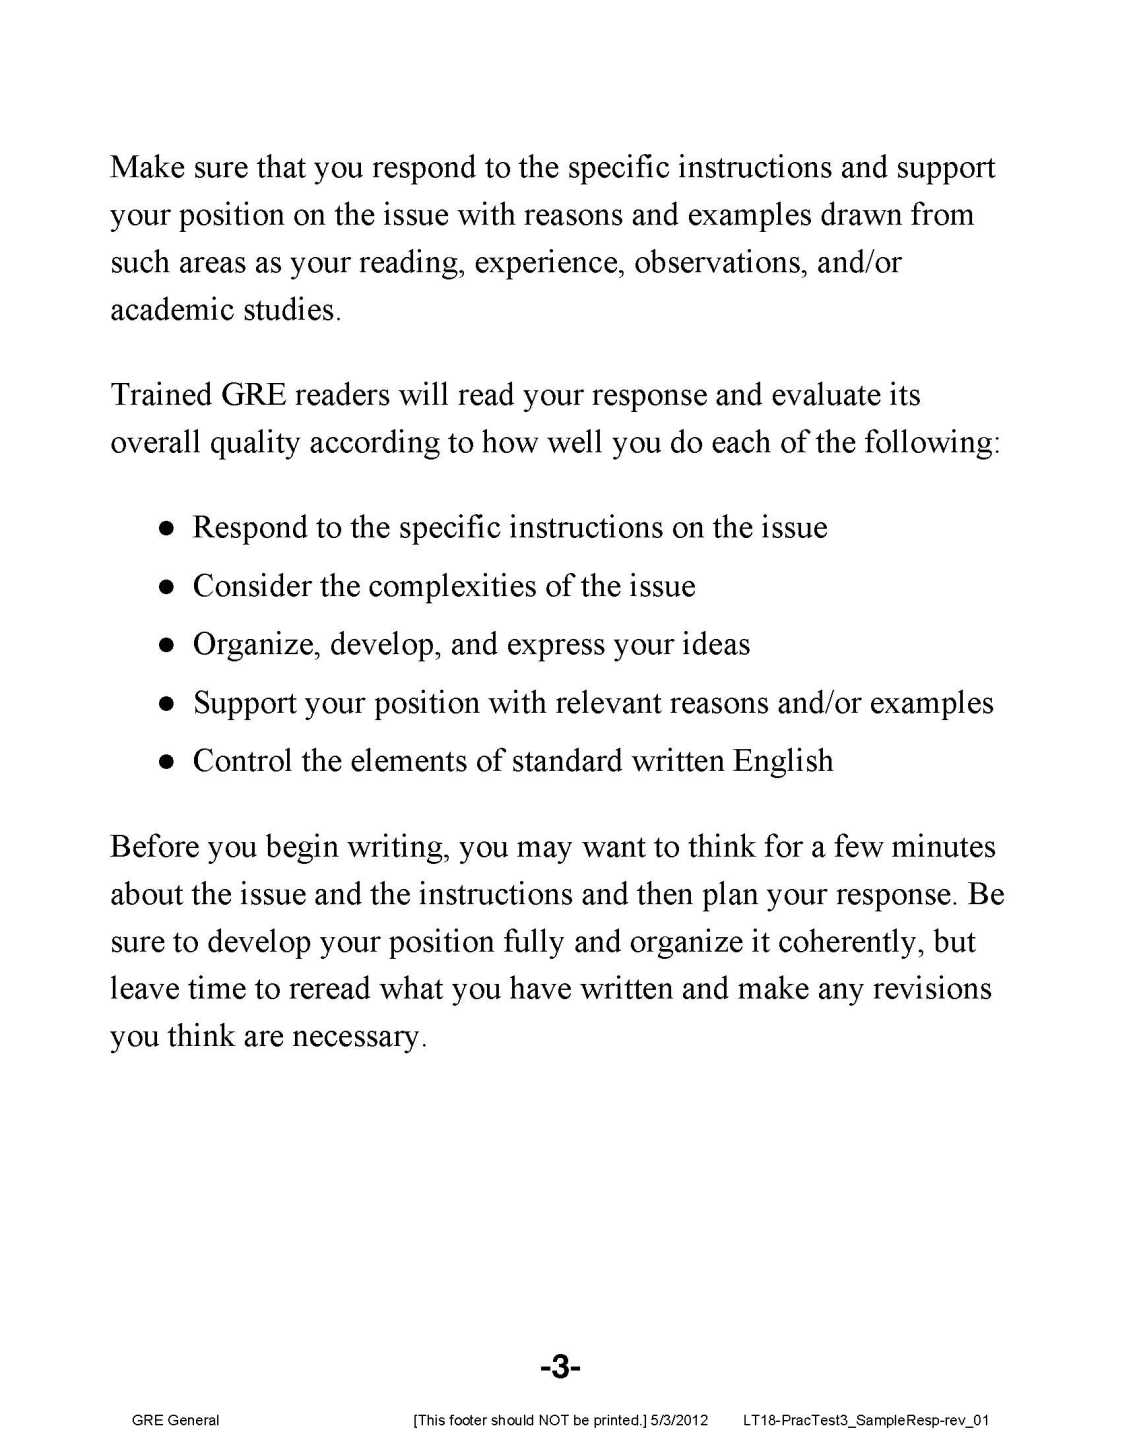 essay about reading experience cover letter example of leadership  sample essays for gre in arguments view the slide of the argument through the microscope of